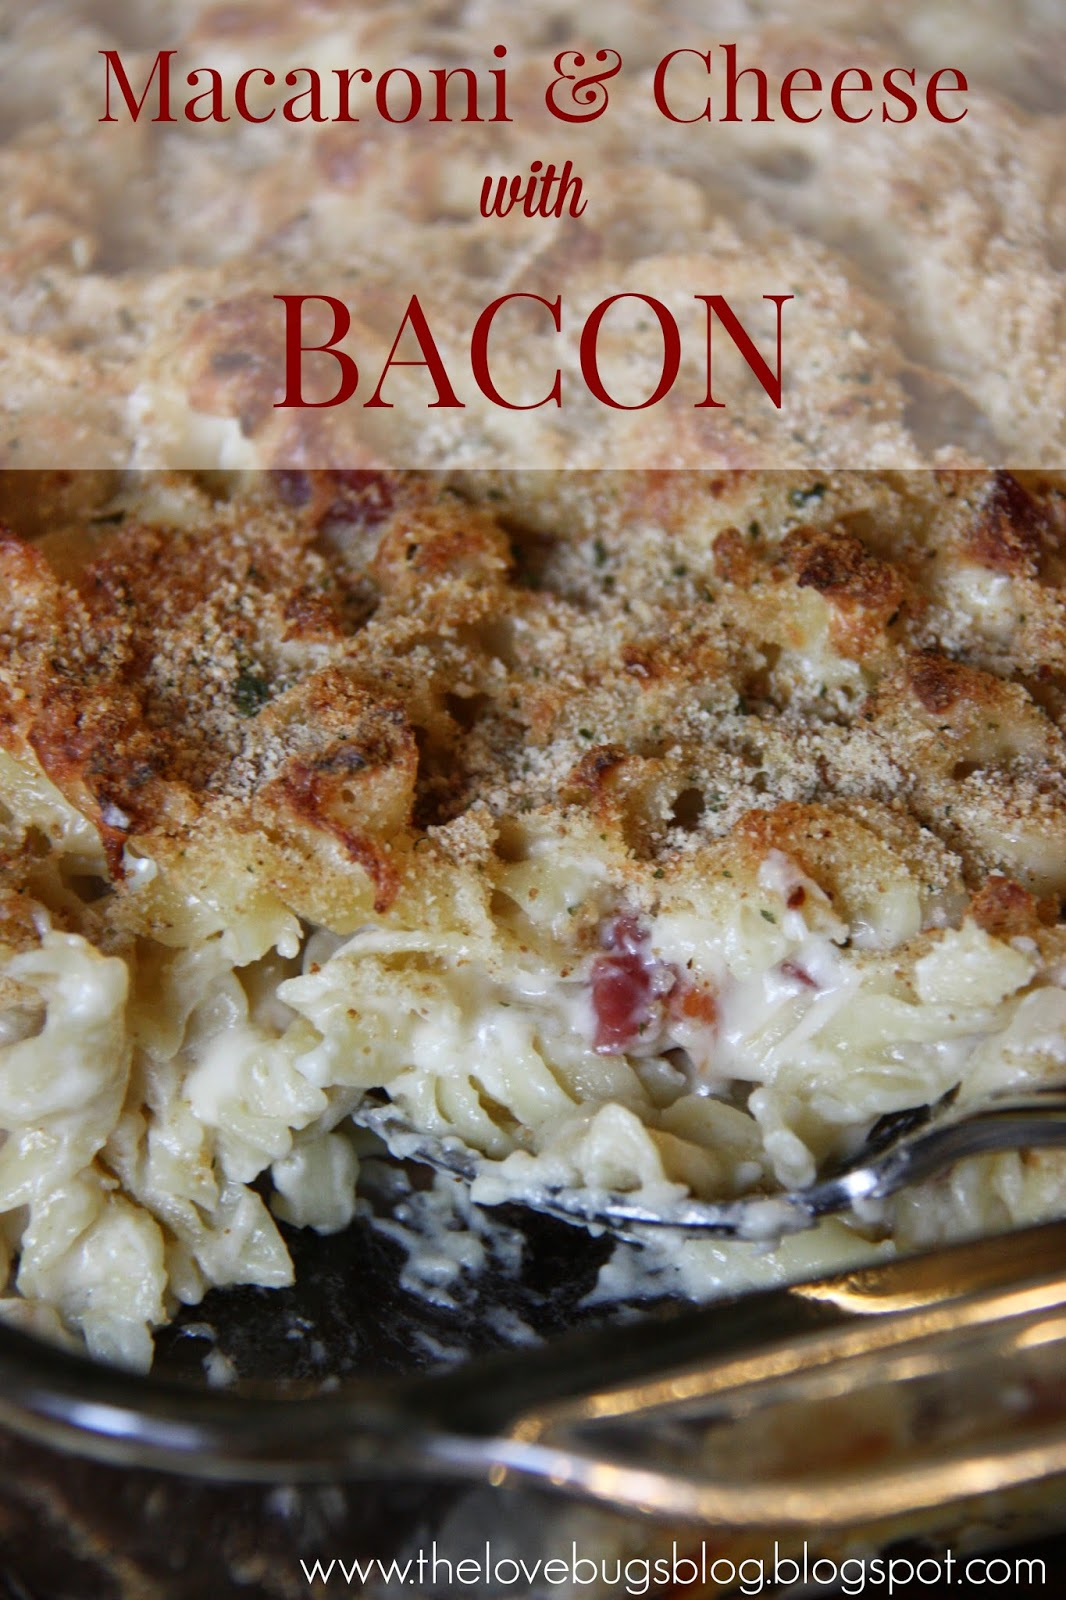 Mac 'n Cheese with Bacon Recipe